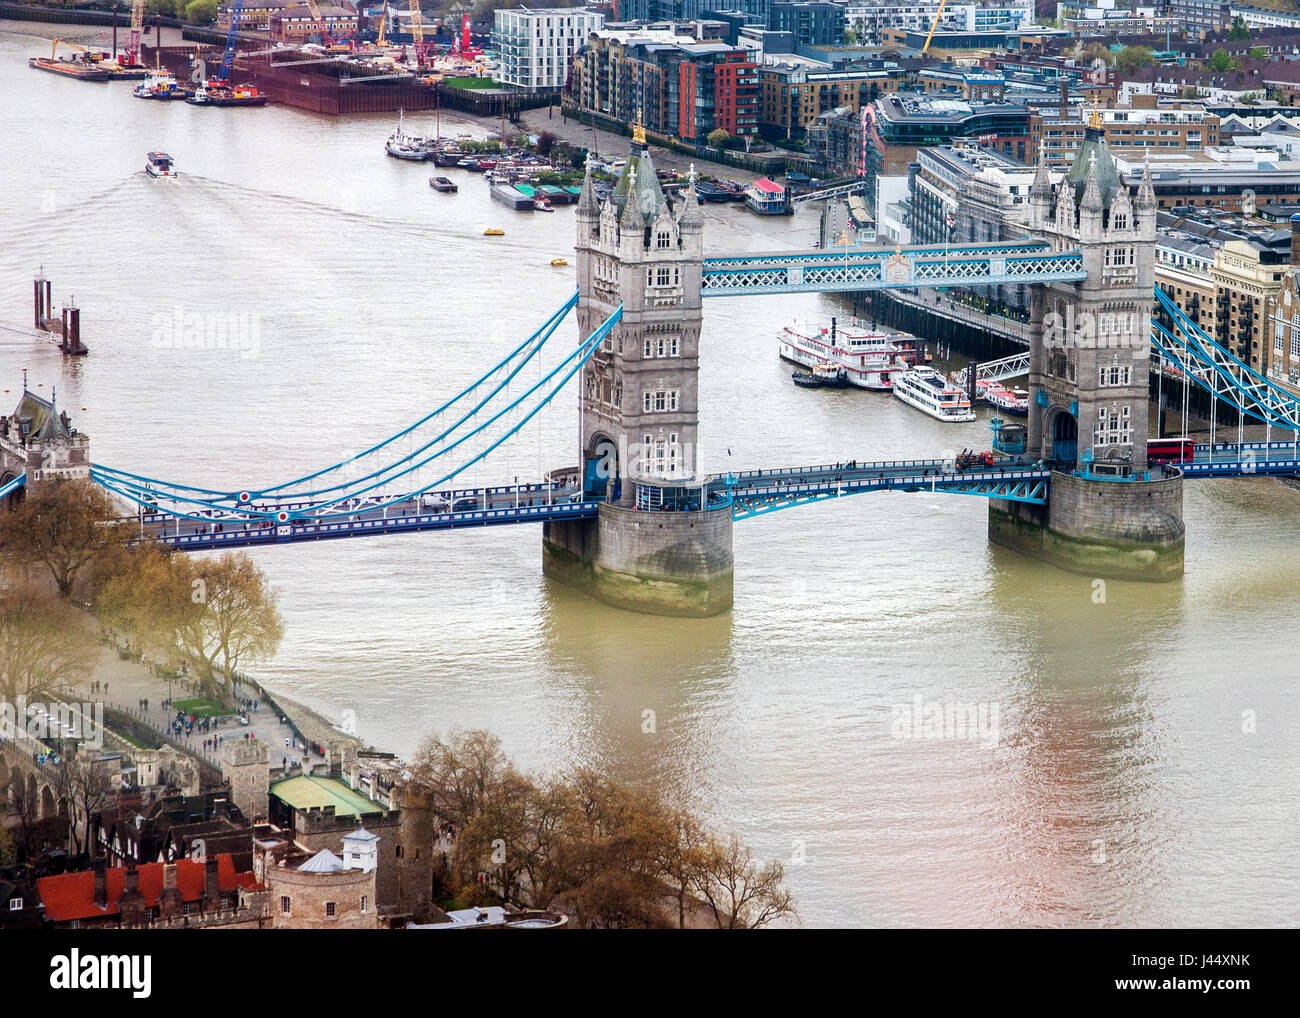 ariel view of Tower bridge and the river Thames - Stock Image